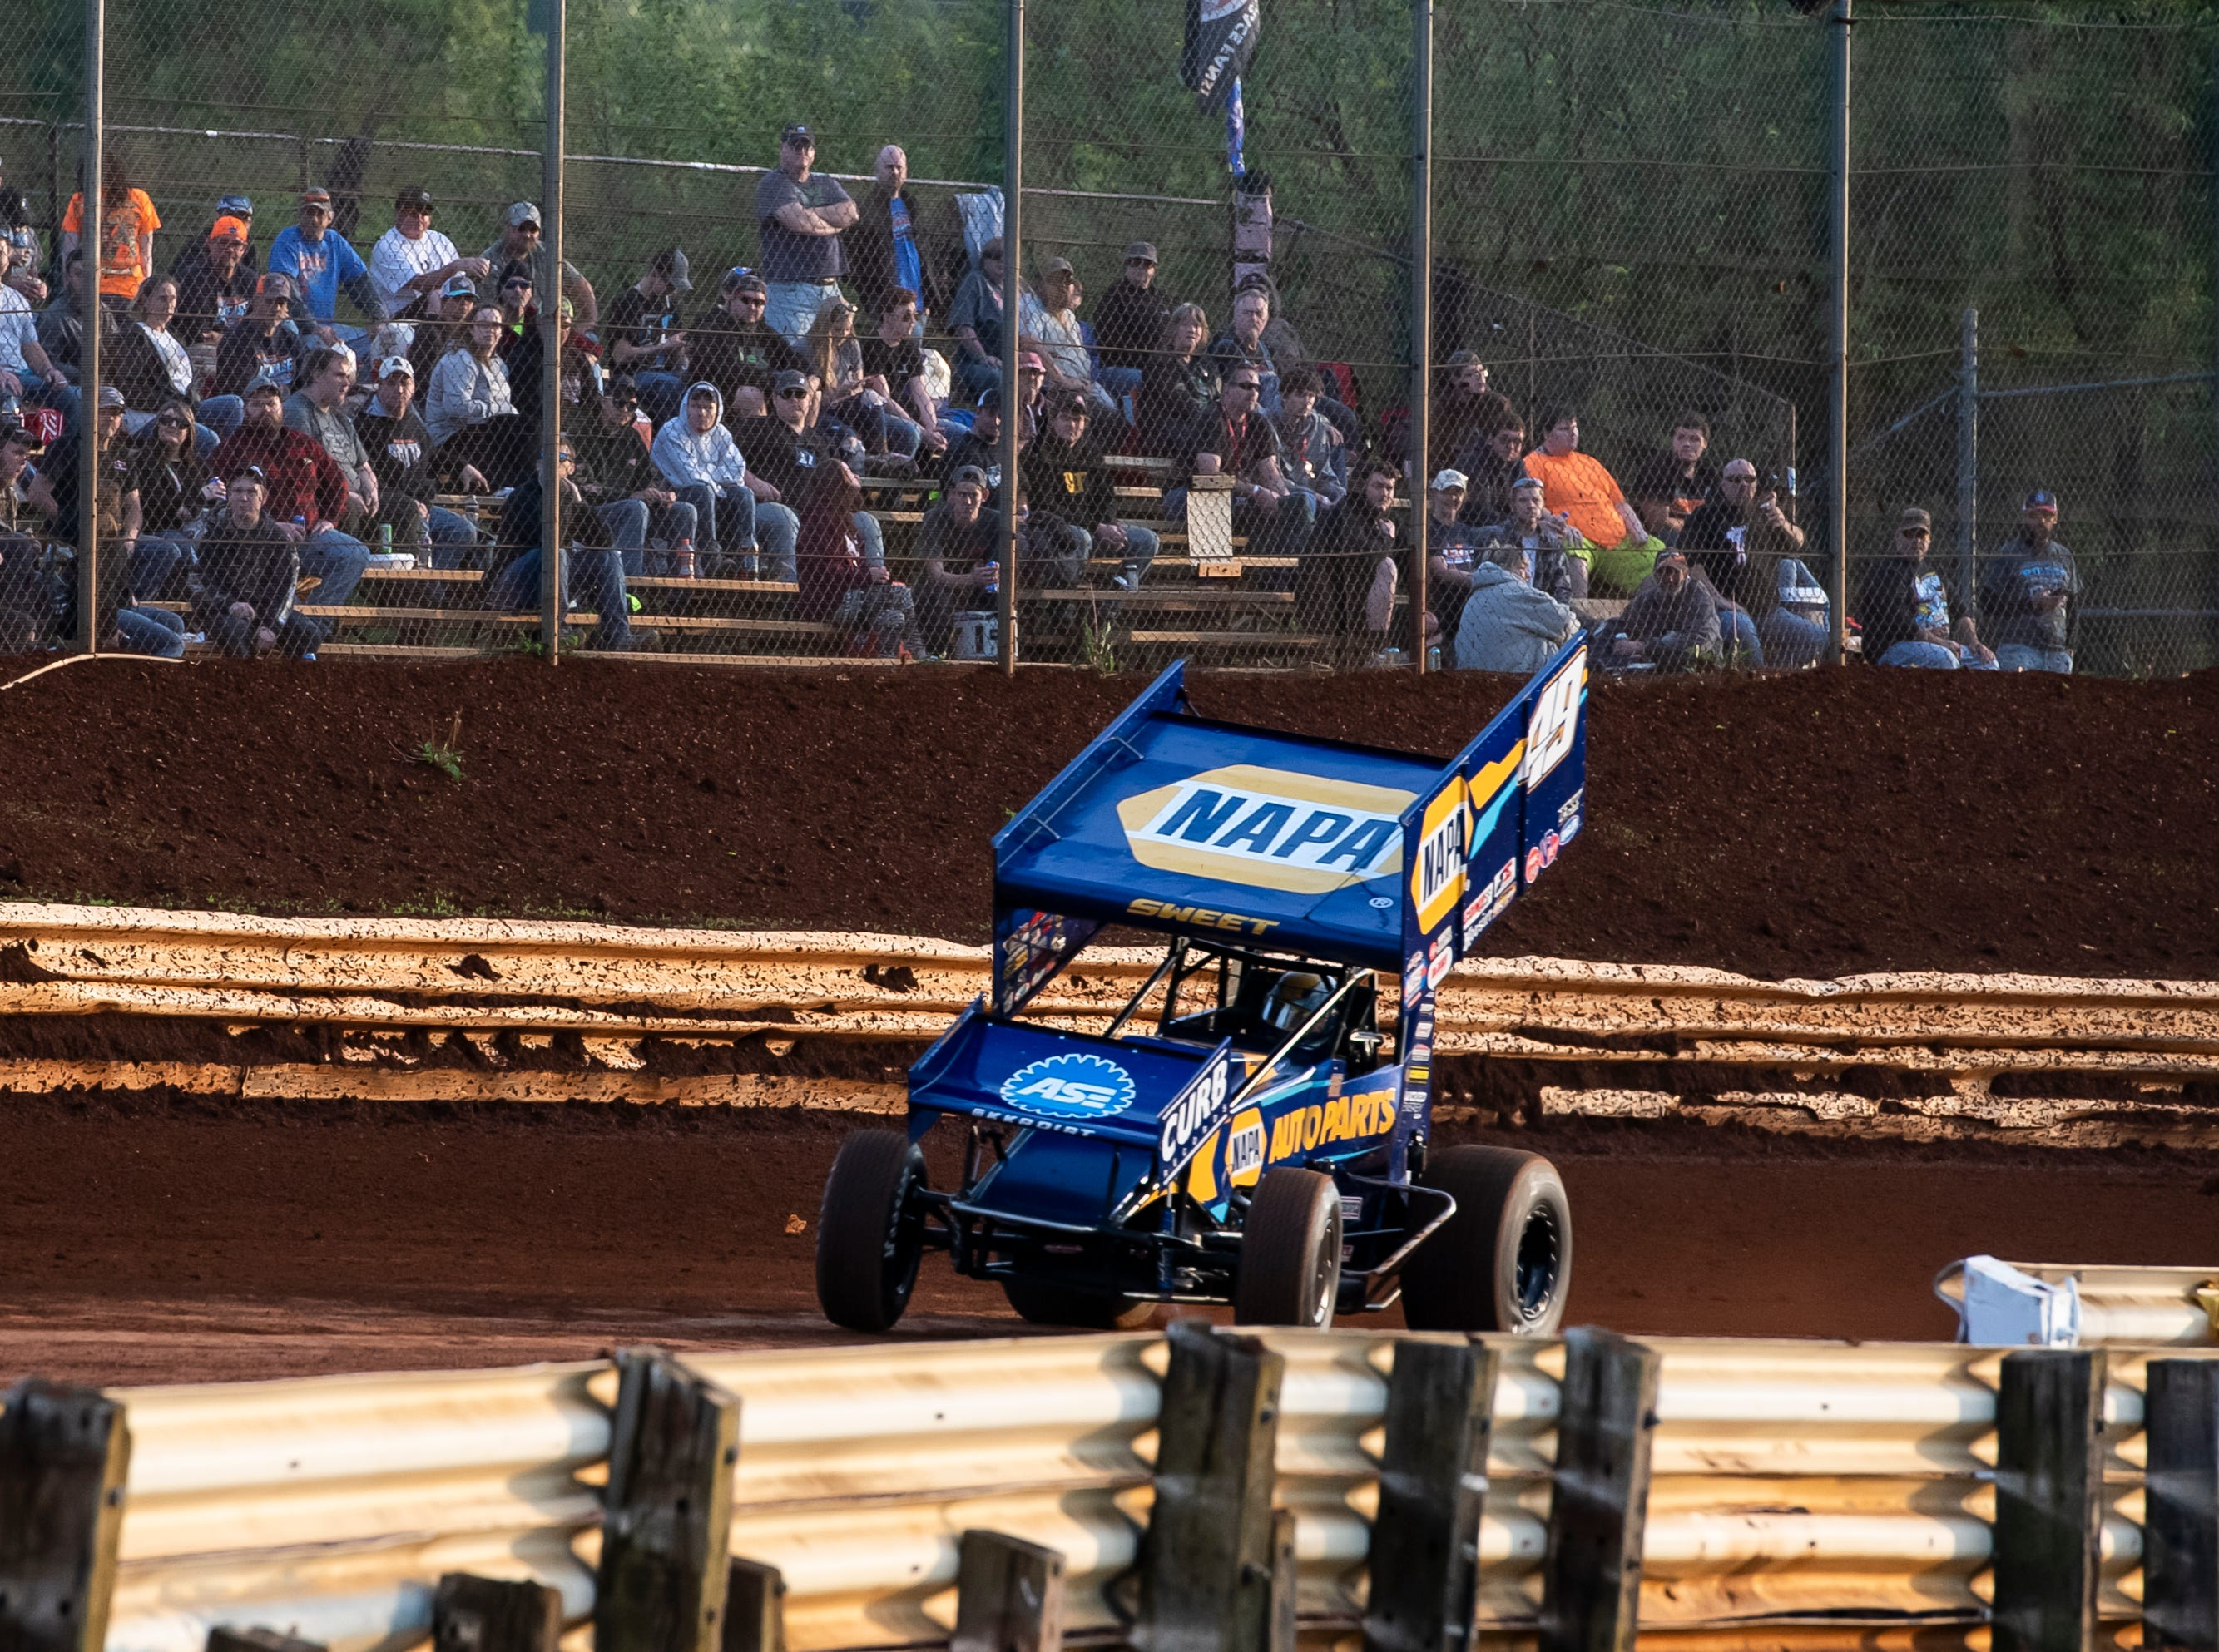 Brad Sweet races in the number 49 car during the World of Outlaws Gettysburg Clash at Lincoln Speedway in Abbottstown on Wednesday, May 15, 2019.